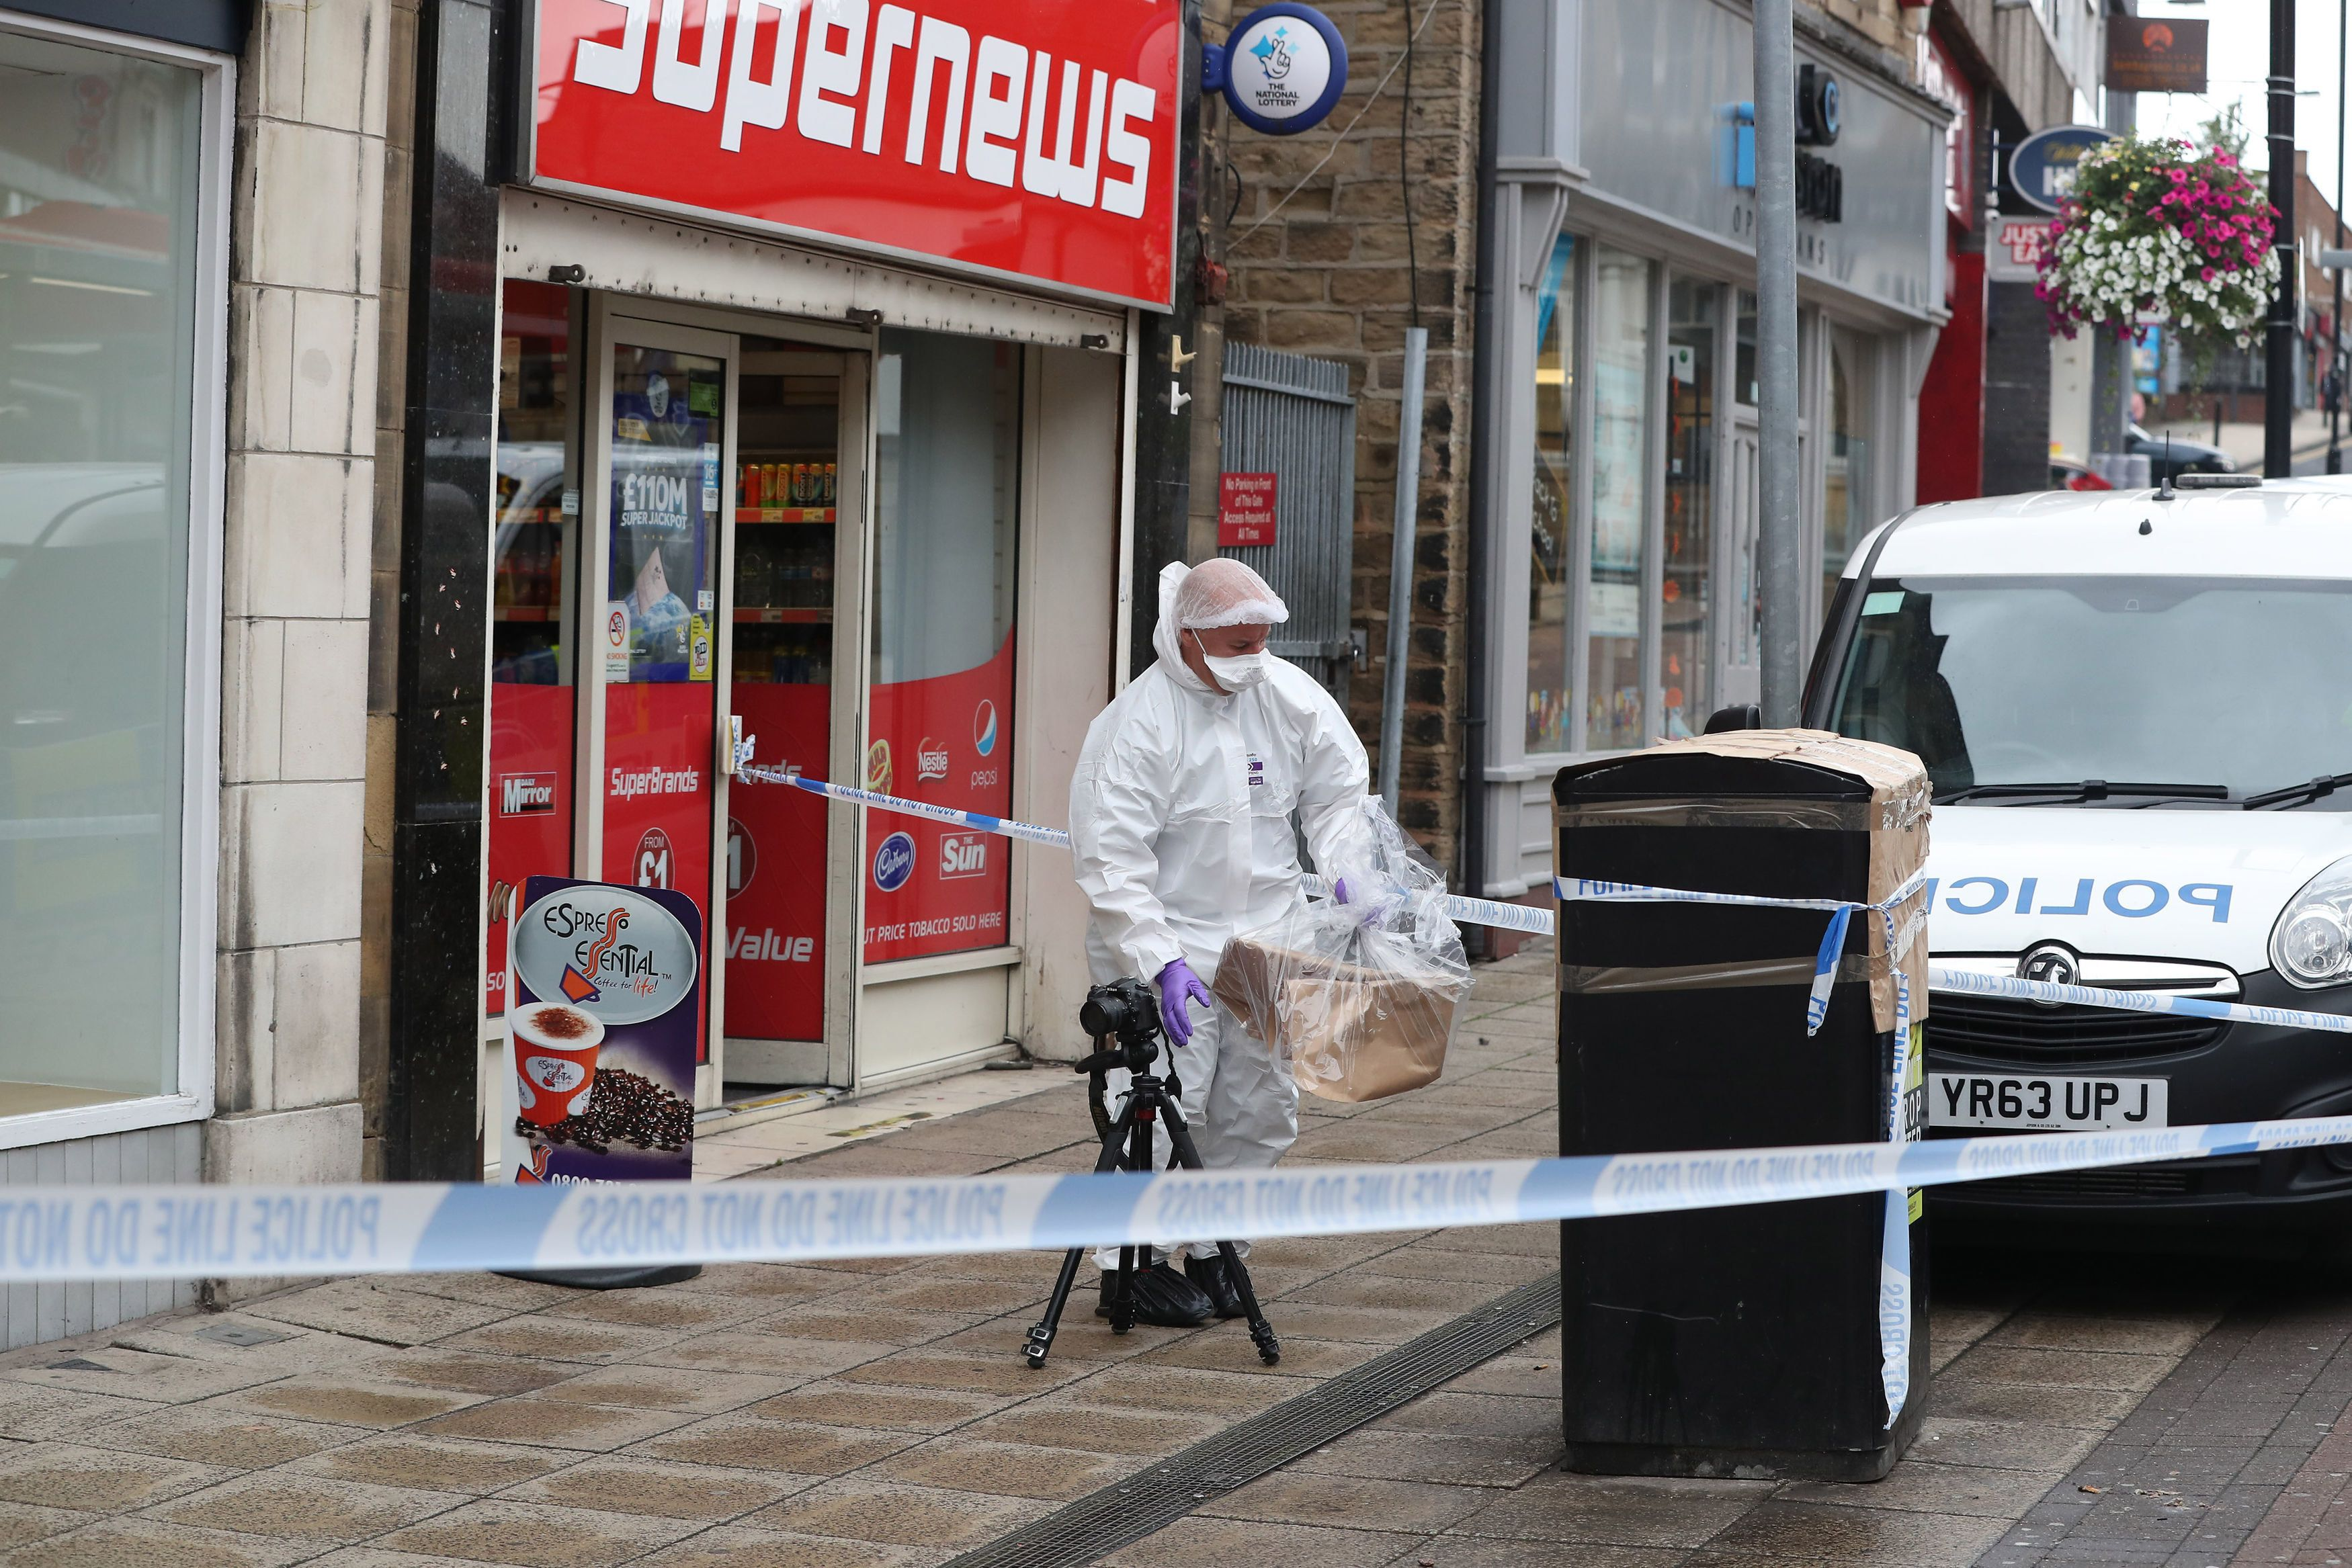 Police arrest person after knife attack in Barnsley